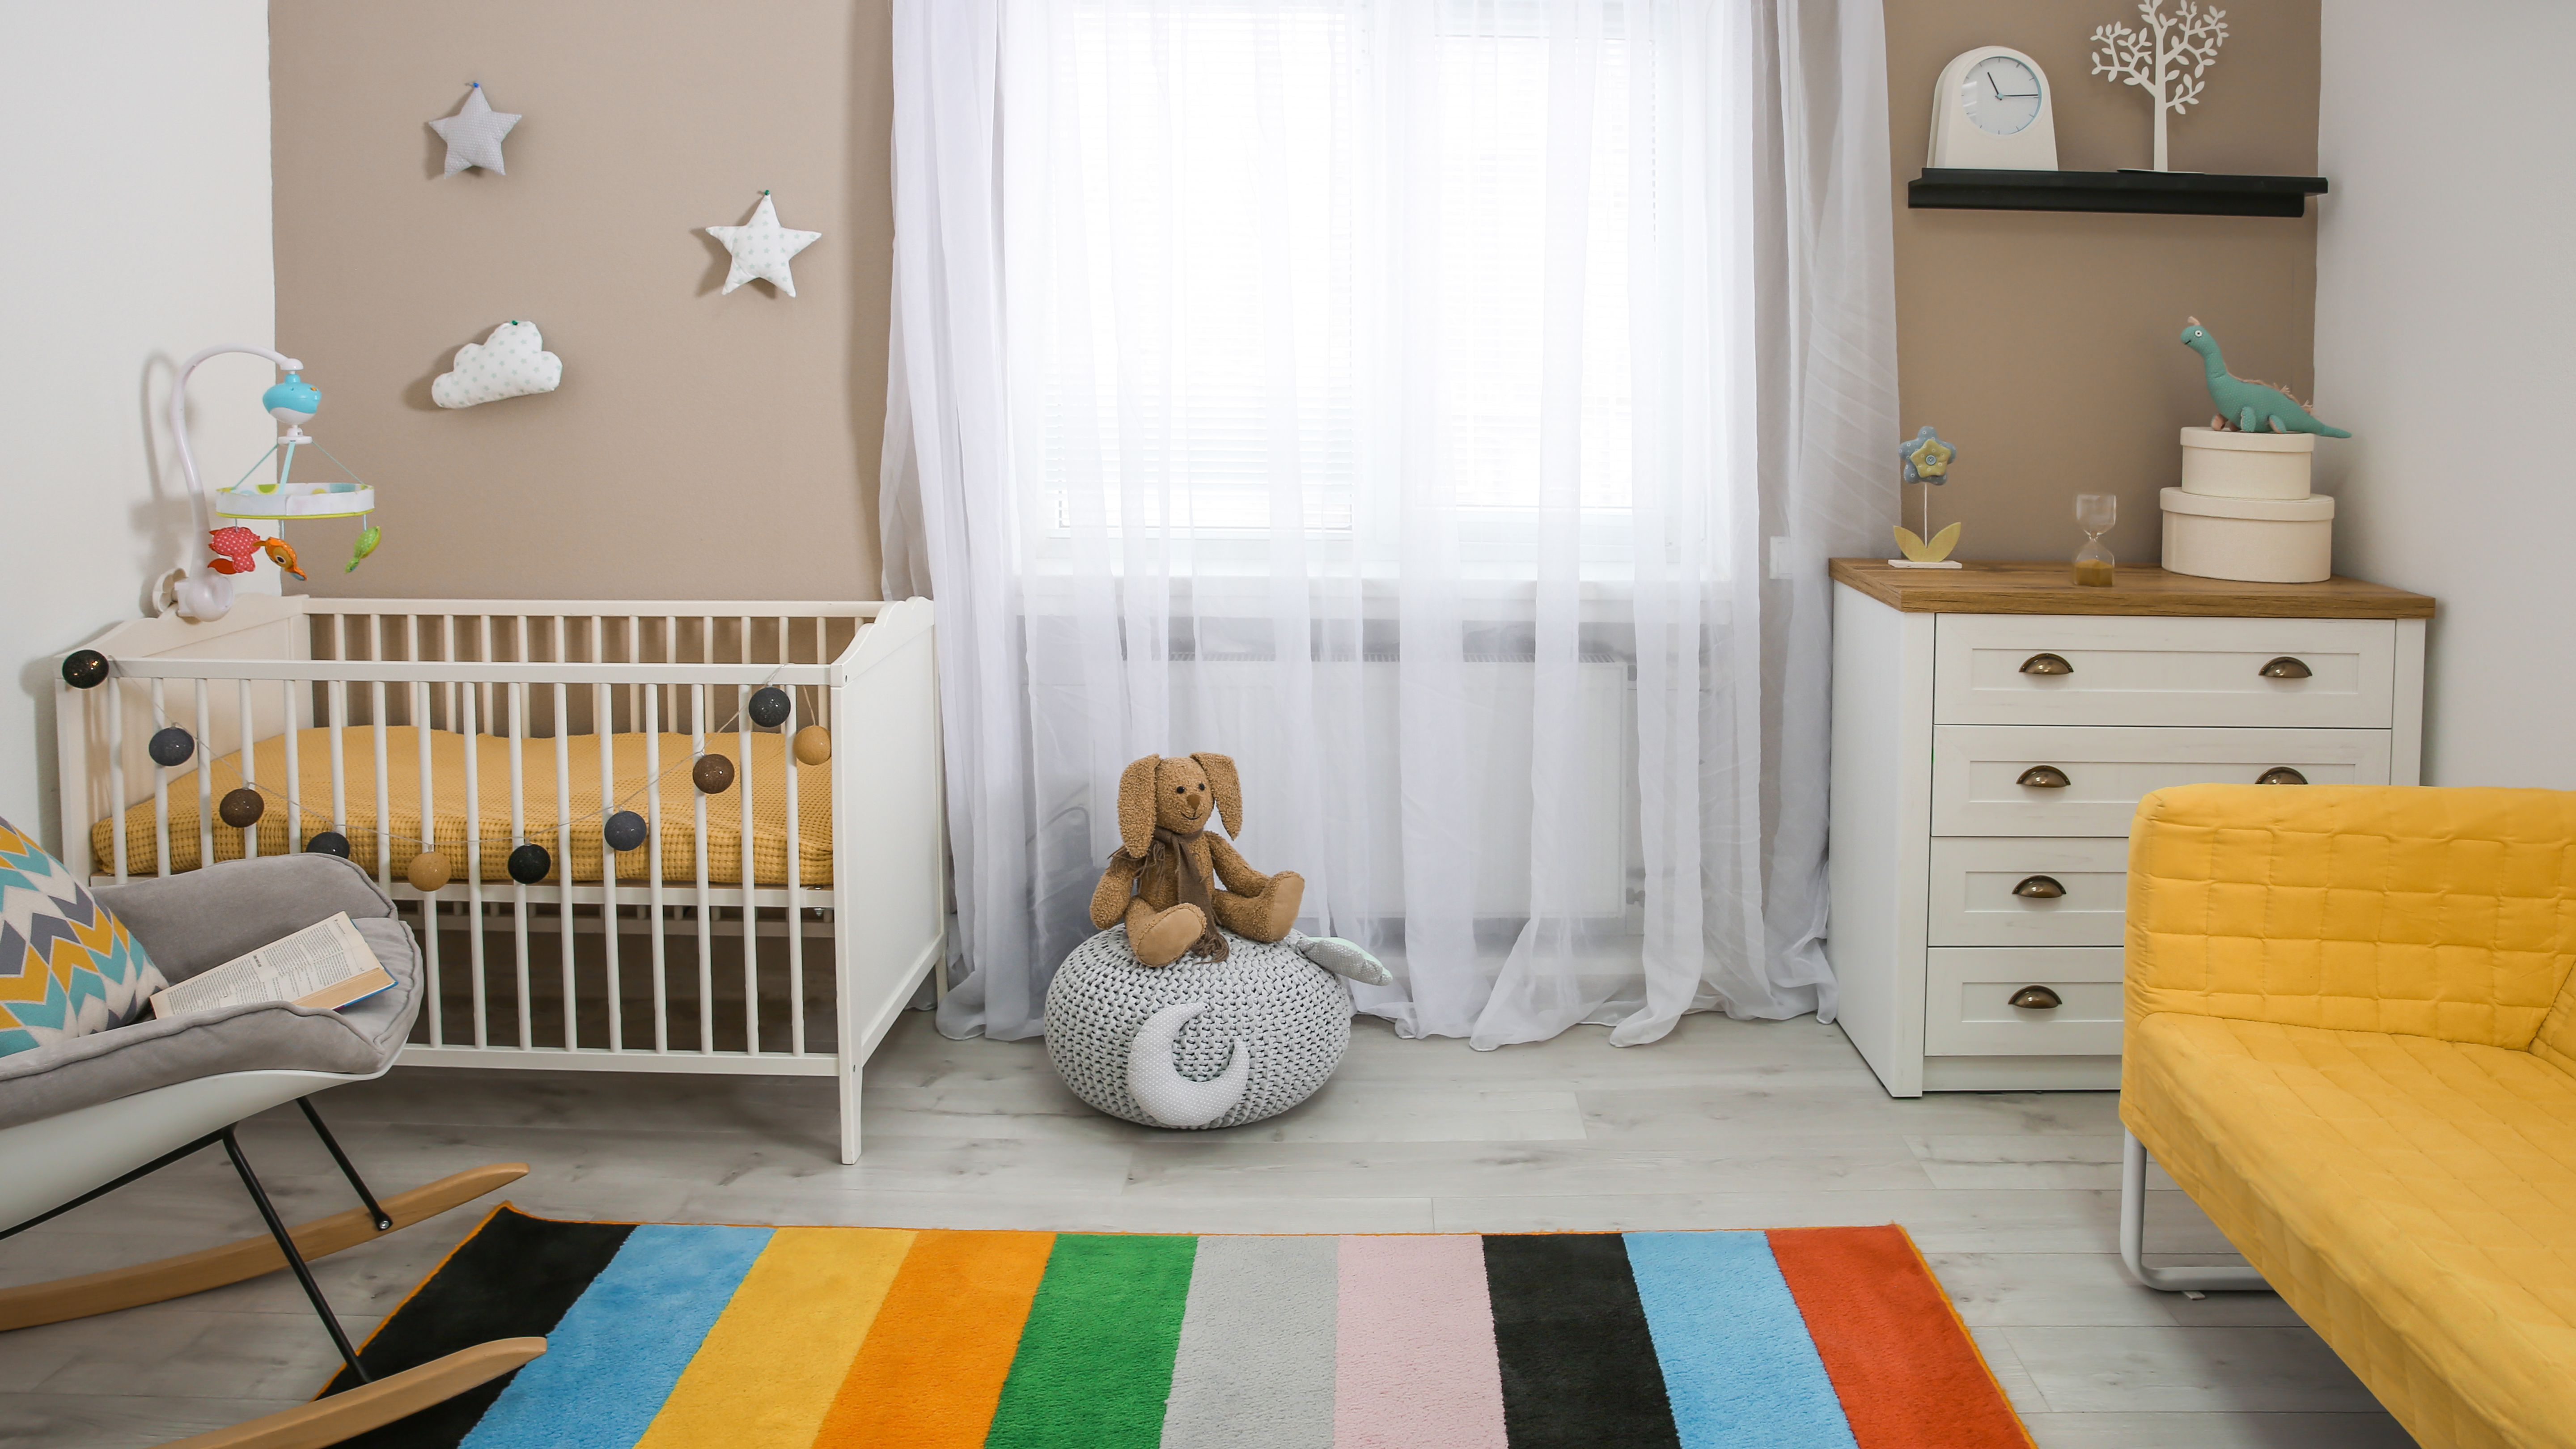 How To Clean A Nursery